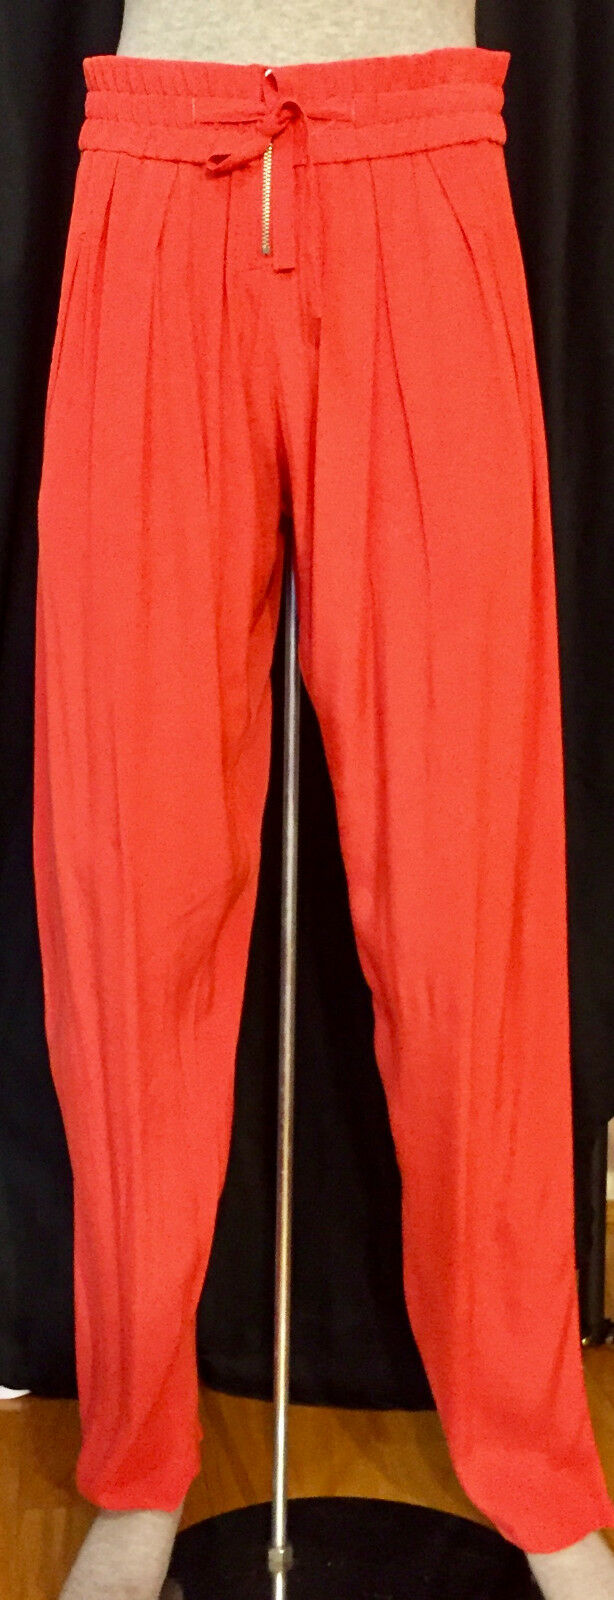 IRO Branson 100% Viscose orange Dress Pants Trousers sz 1 small